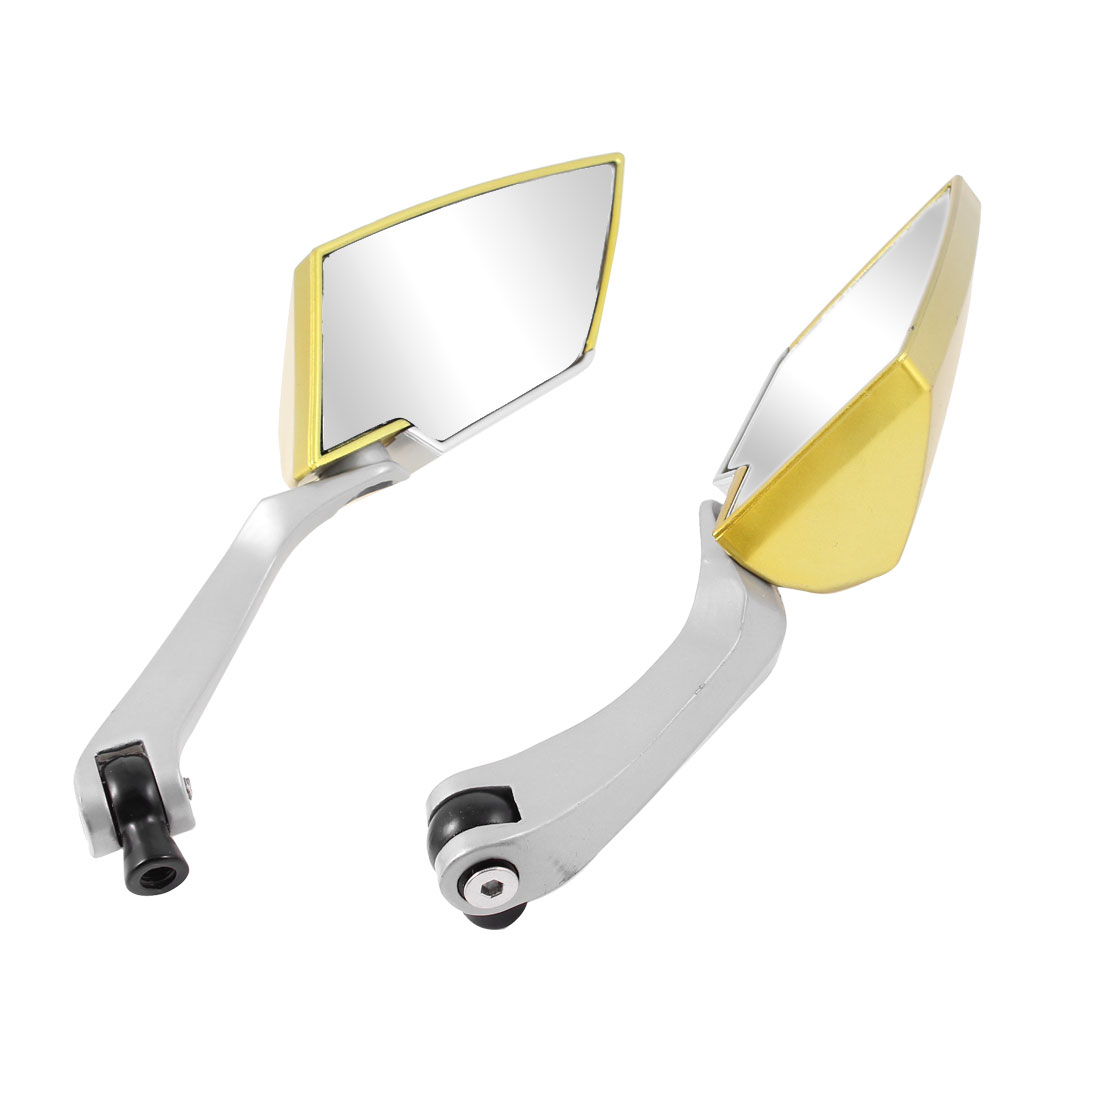 2 Pcs Silver Gold Tone Metal Shell Motorcycle Side Rear View Blind Spot Mirror